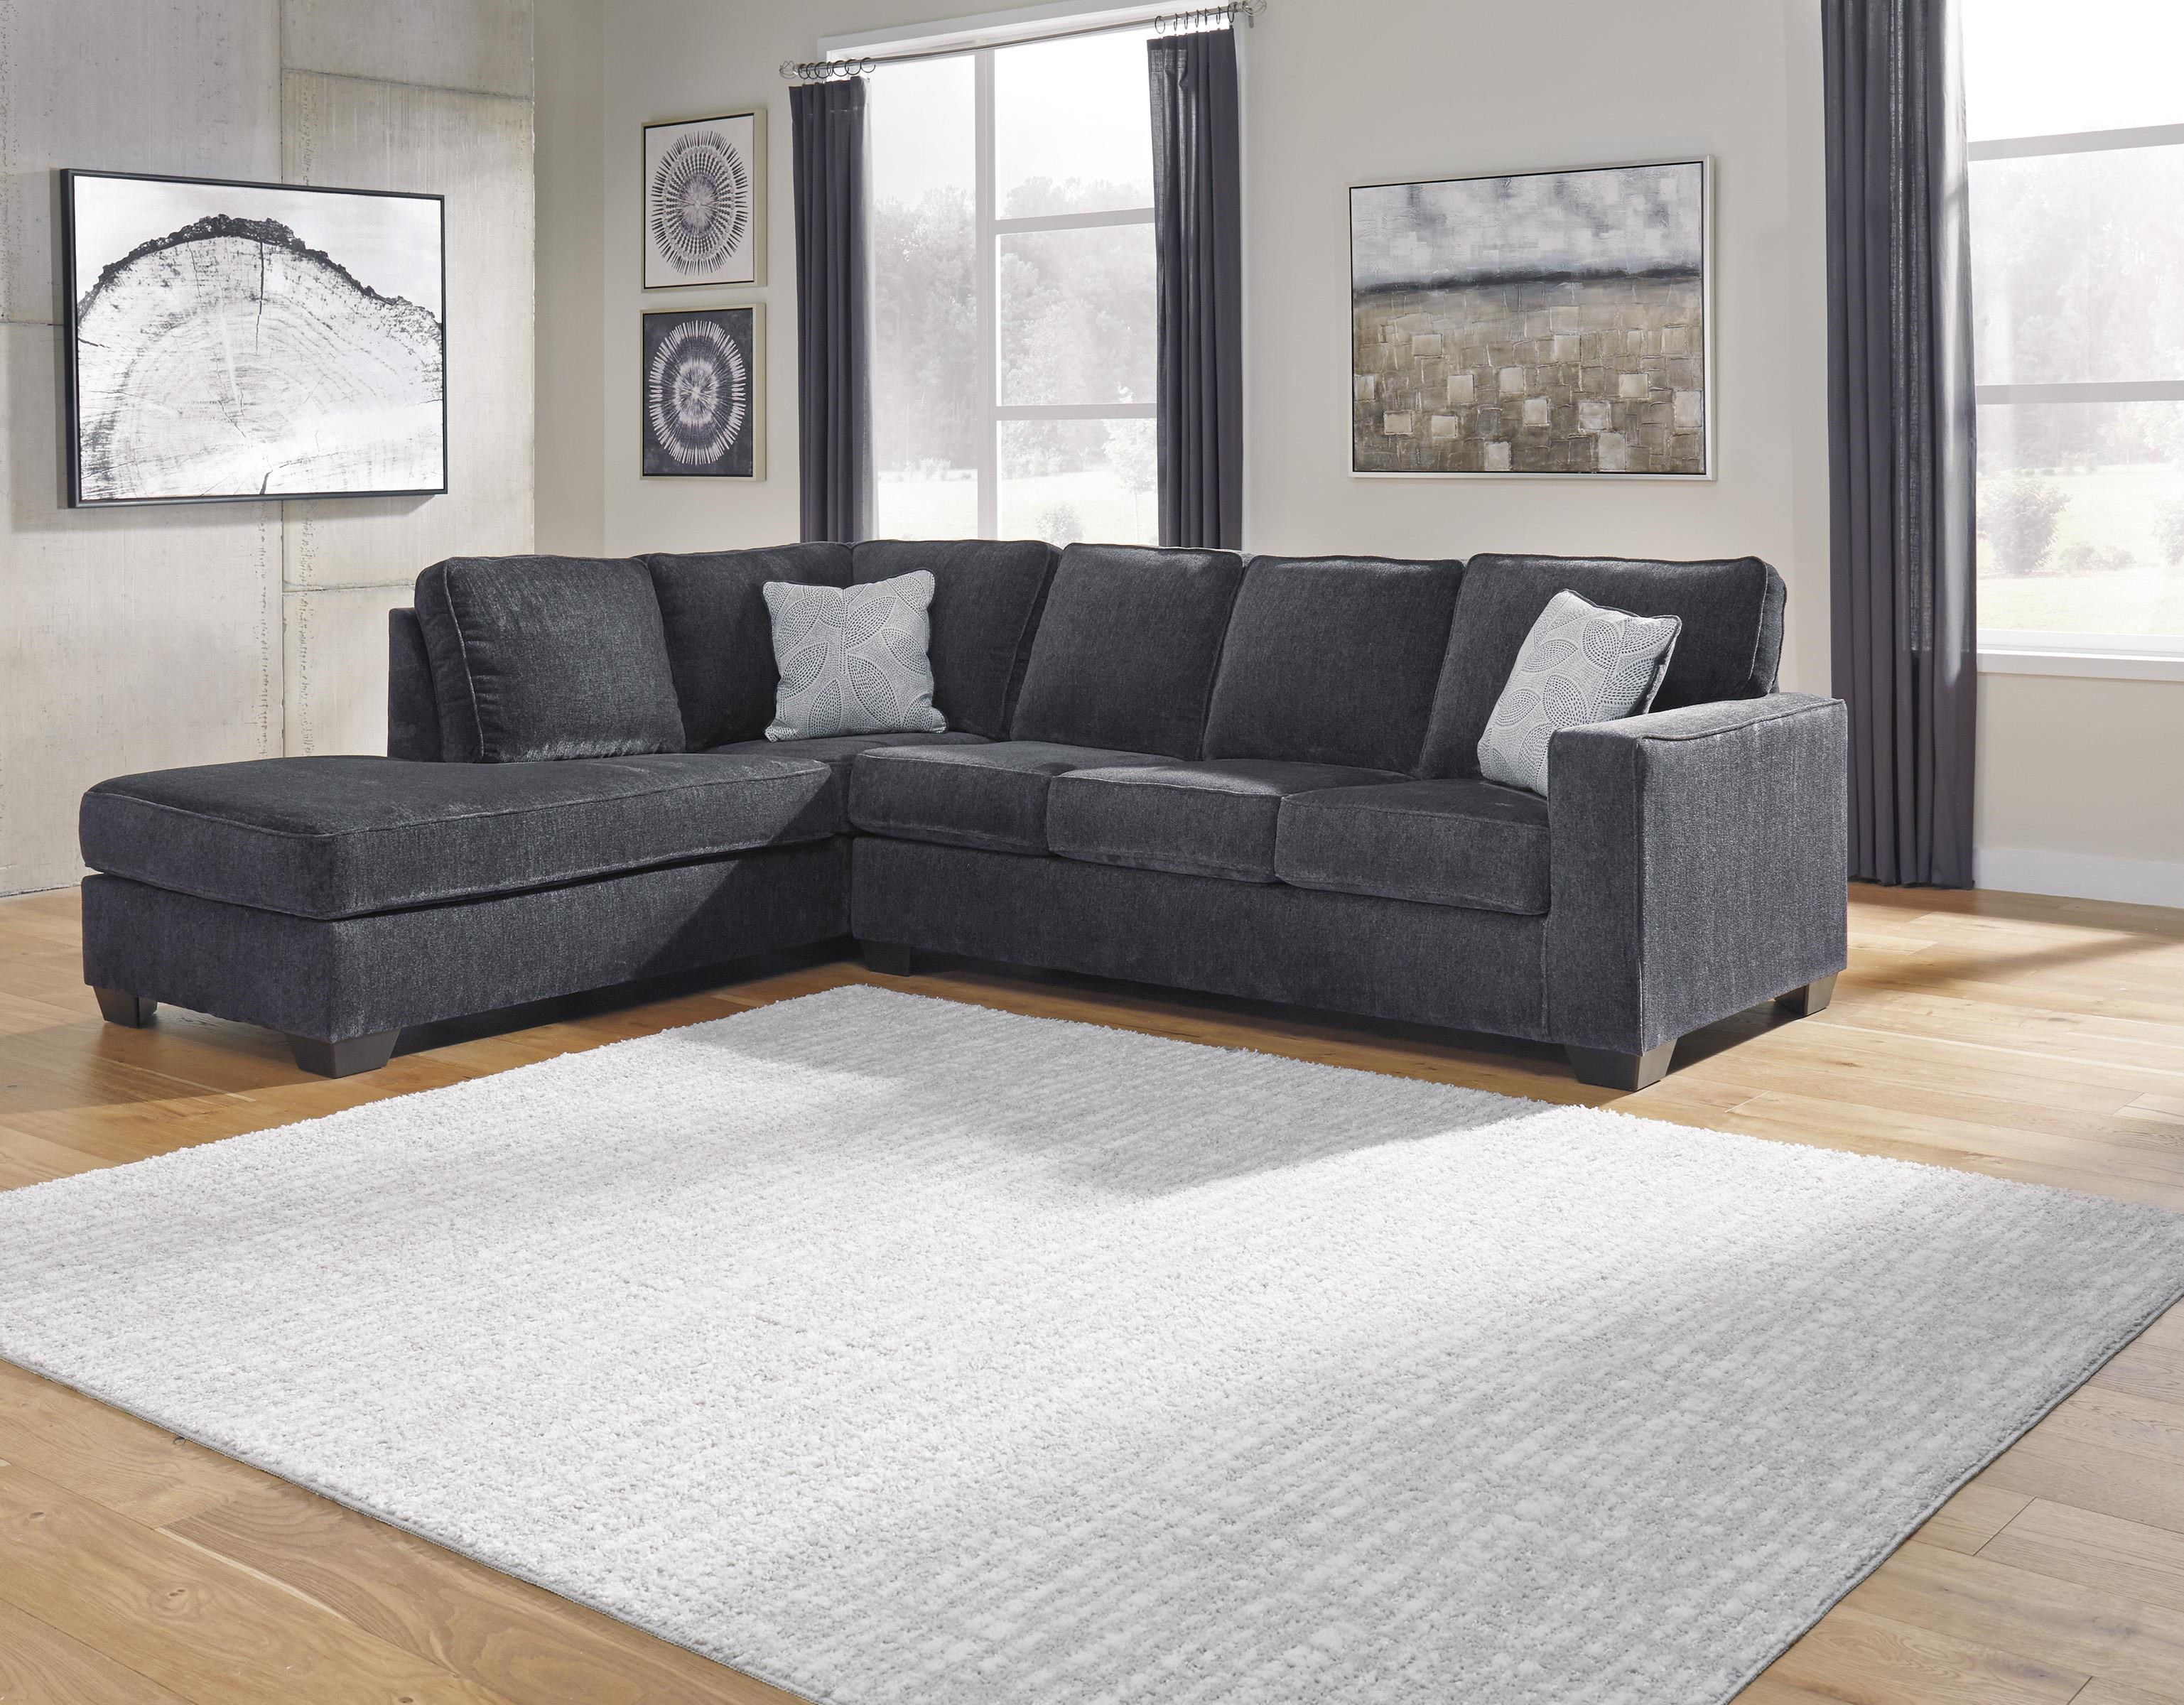 2 PC Sectional and Ottoman Set